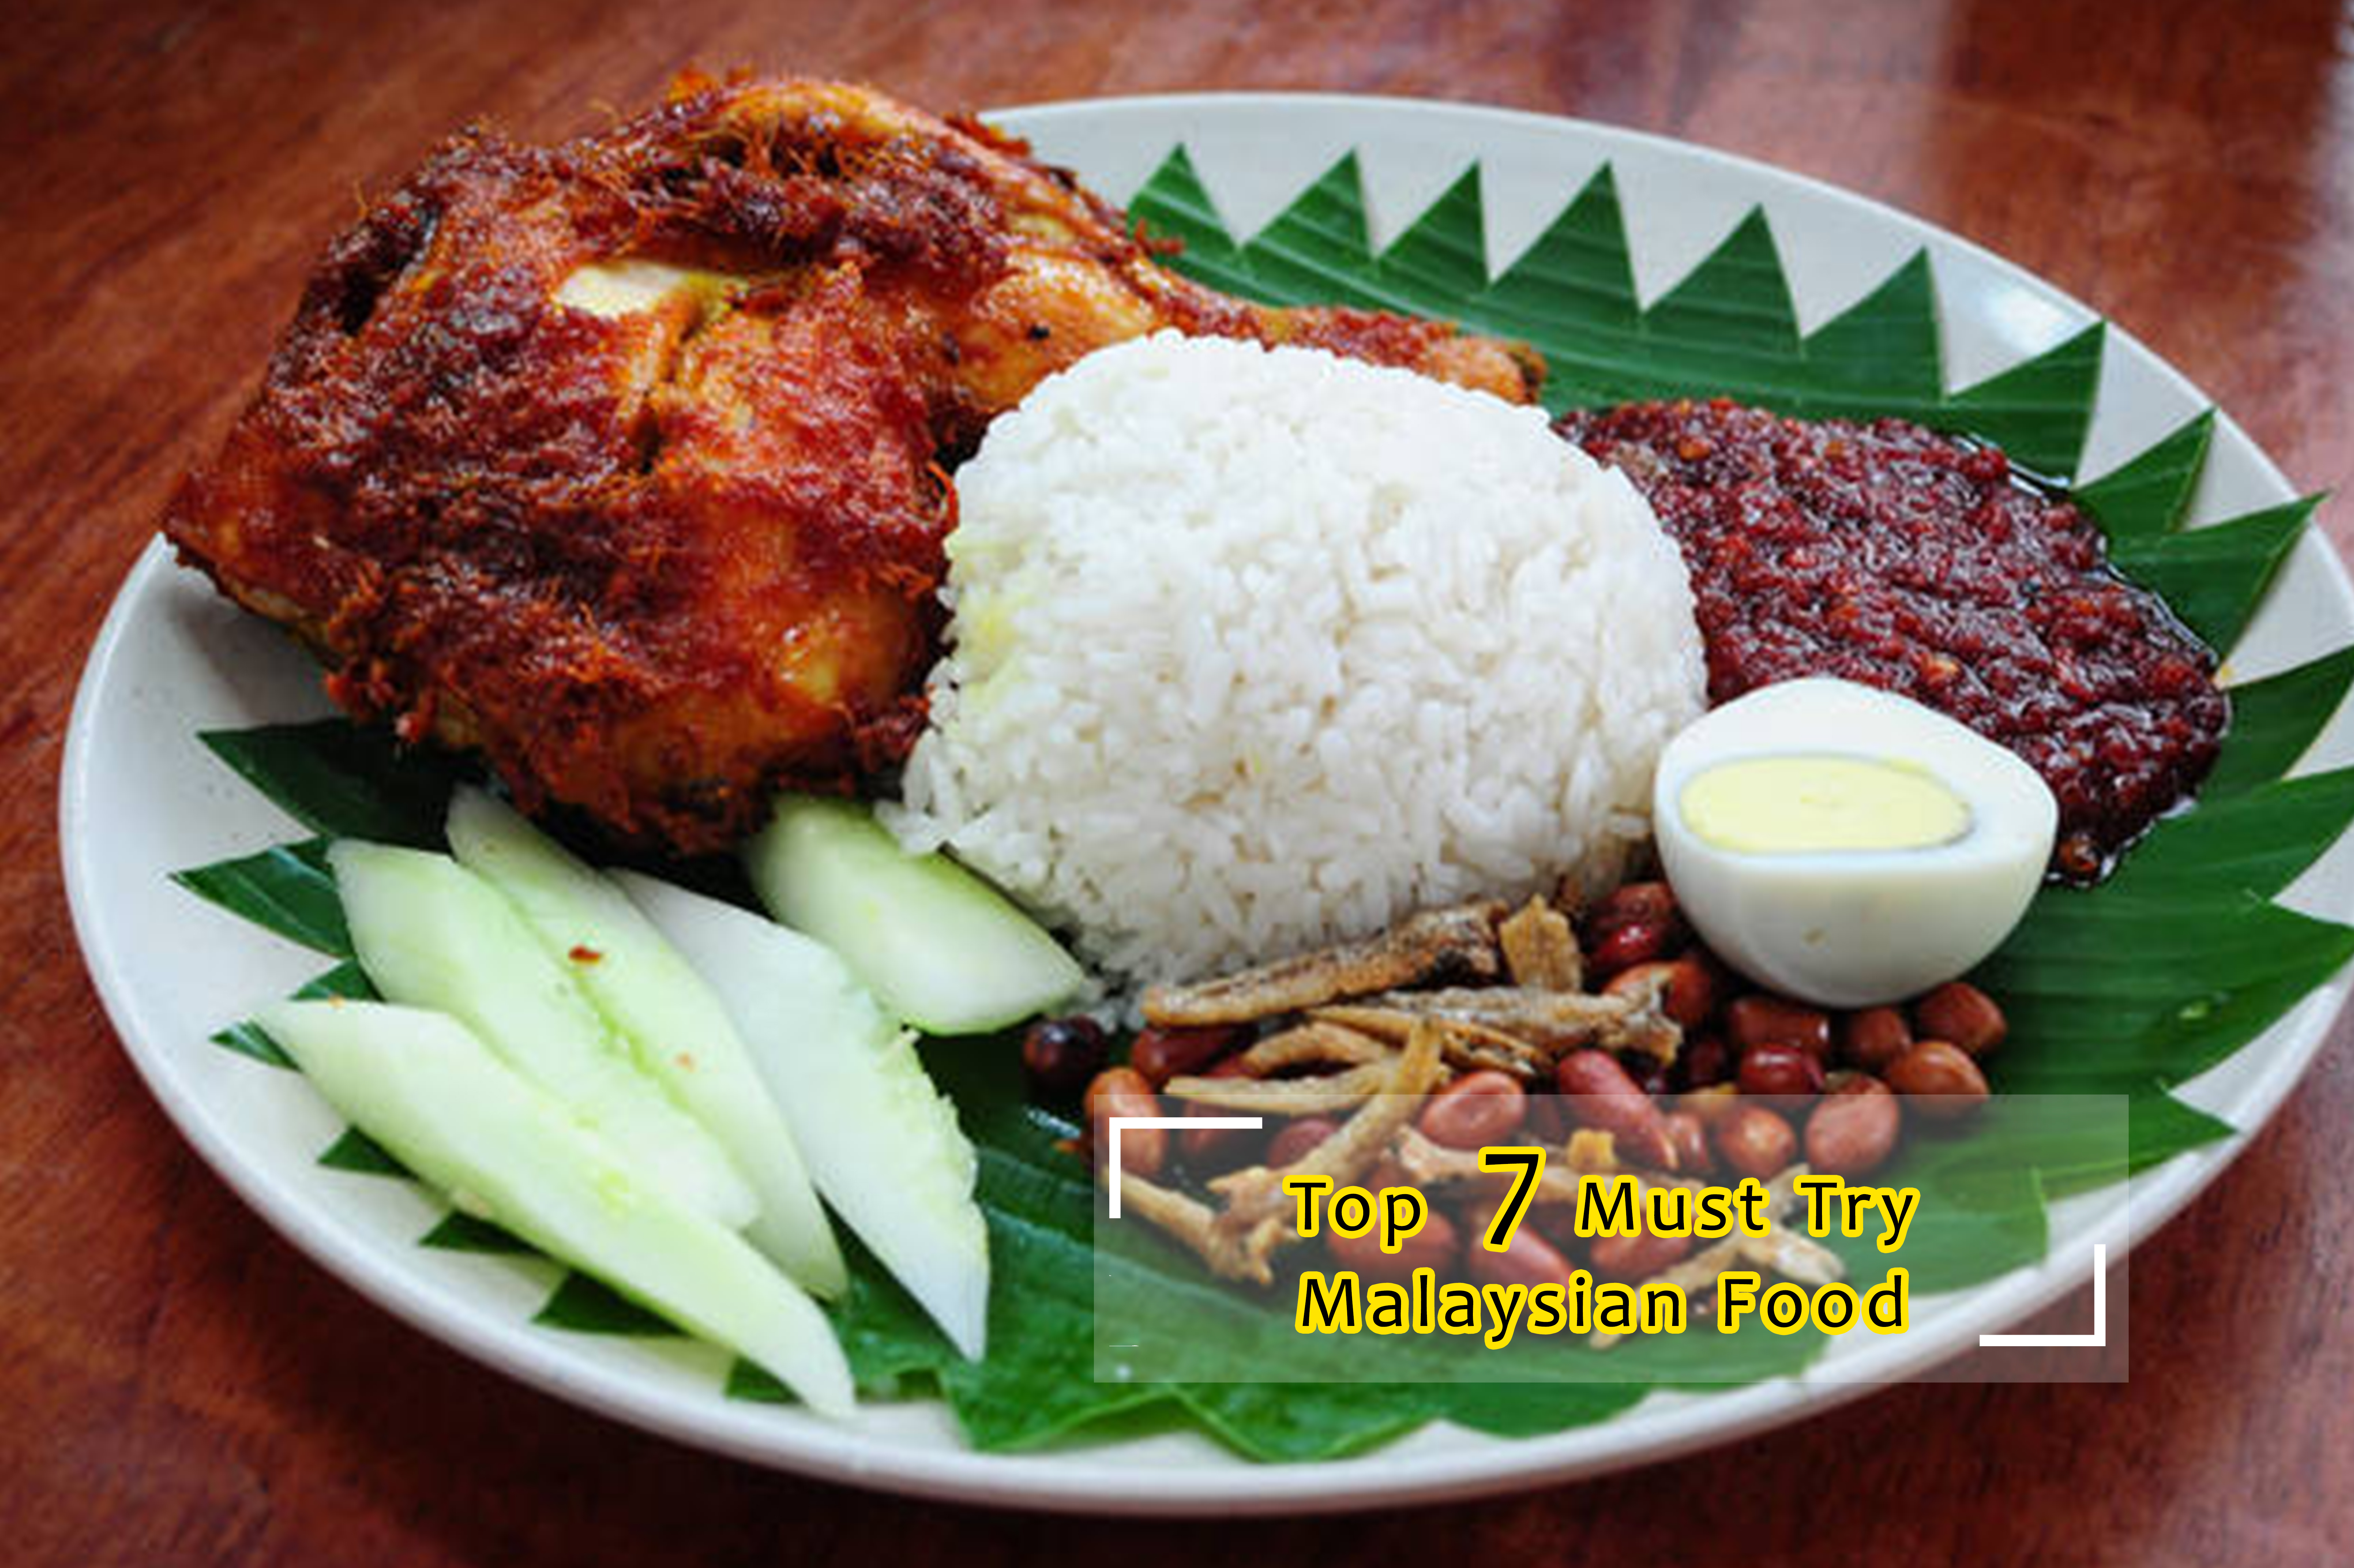 Top 7 Must Try Malaysian Food